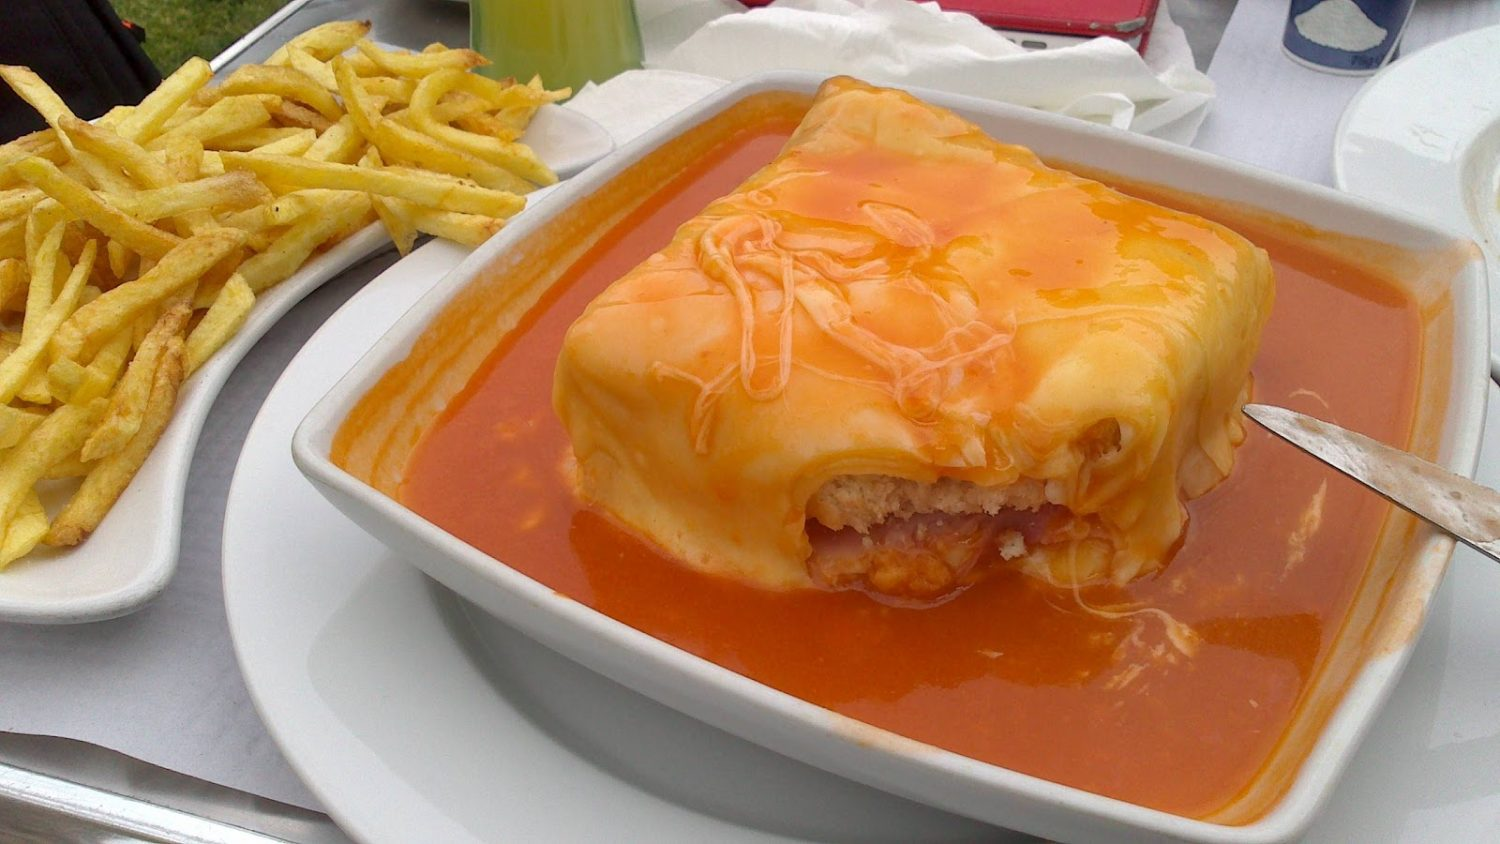 Francesinha is a typical dish from Porto, fatty and yummy.